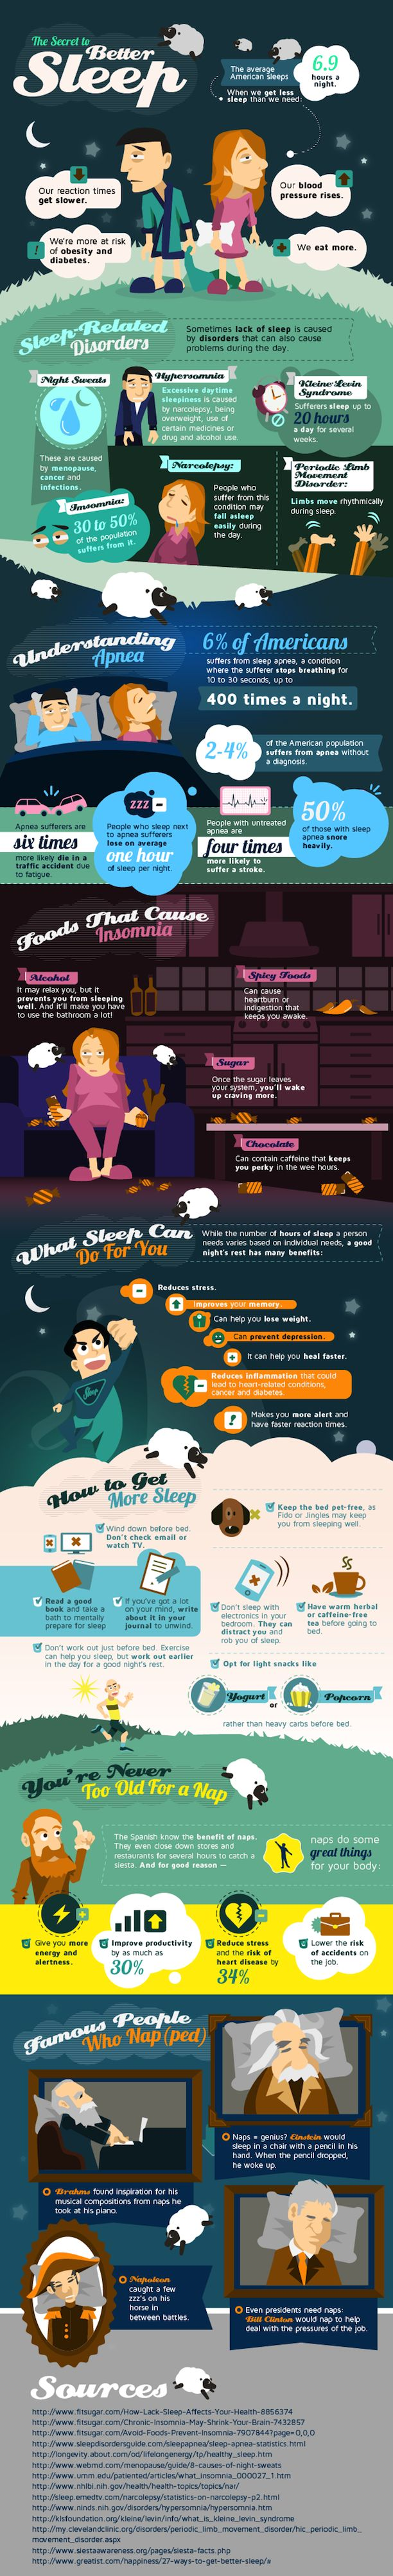 Getting enough sleep is important (and naps count!) - The Secret to Better Sleep